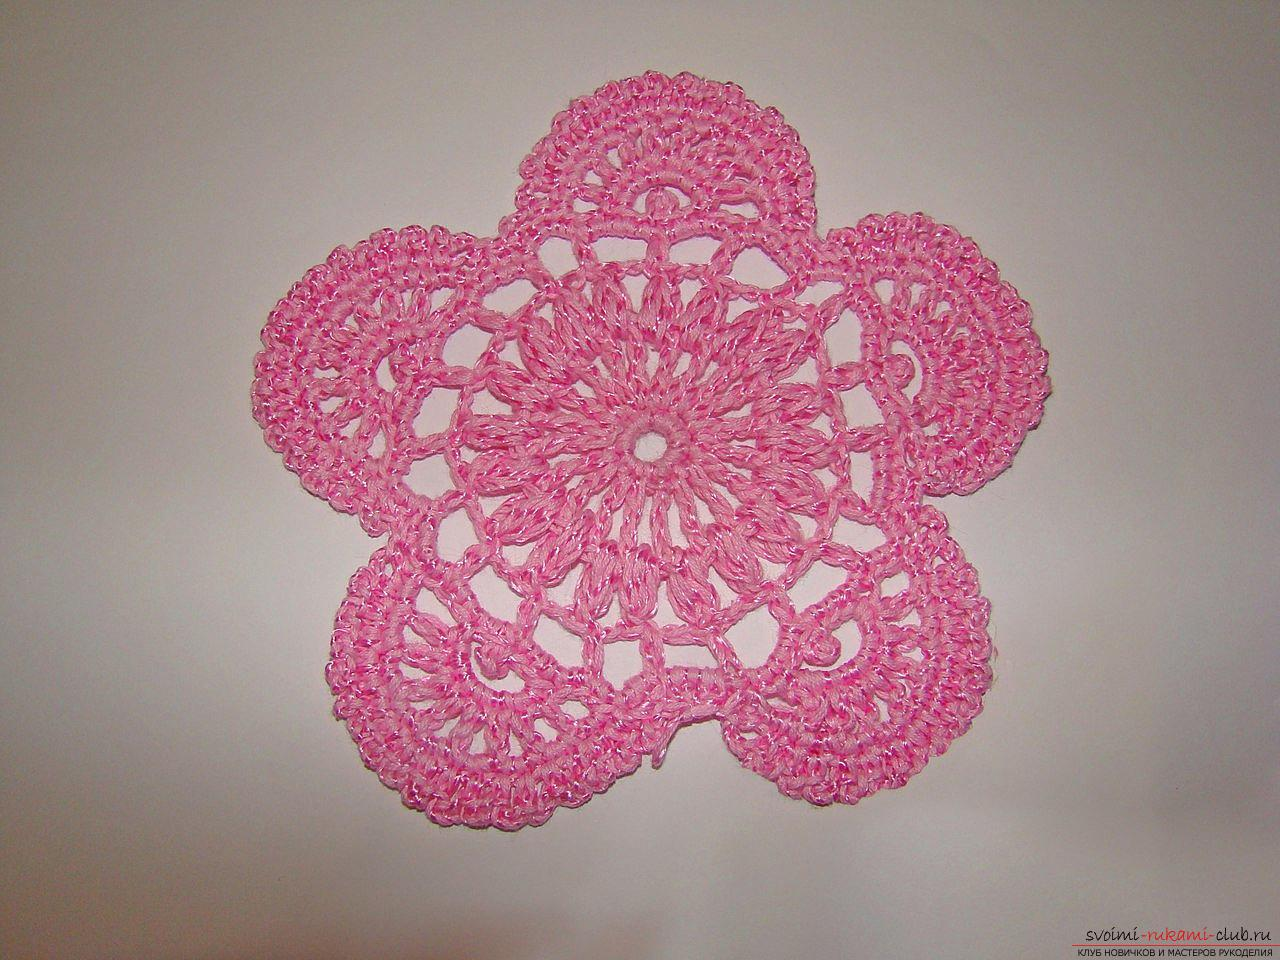 A master class of knitting with a diagram and a photo will teach you how to crochet an openwork flower with a crochet. Photo Number 14